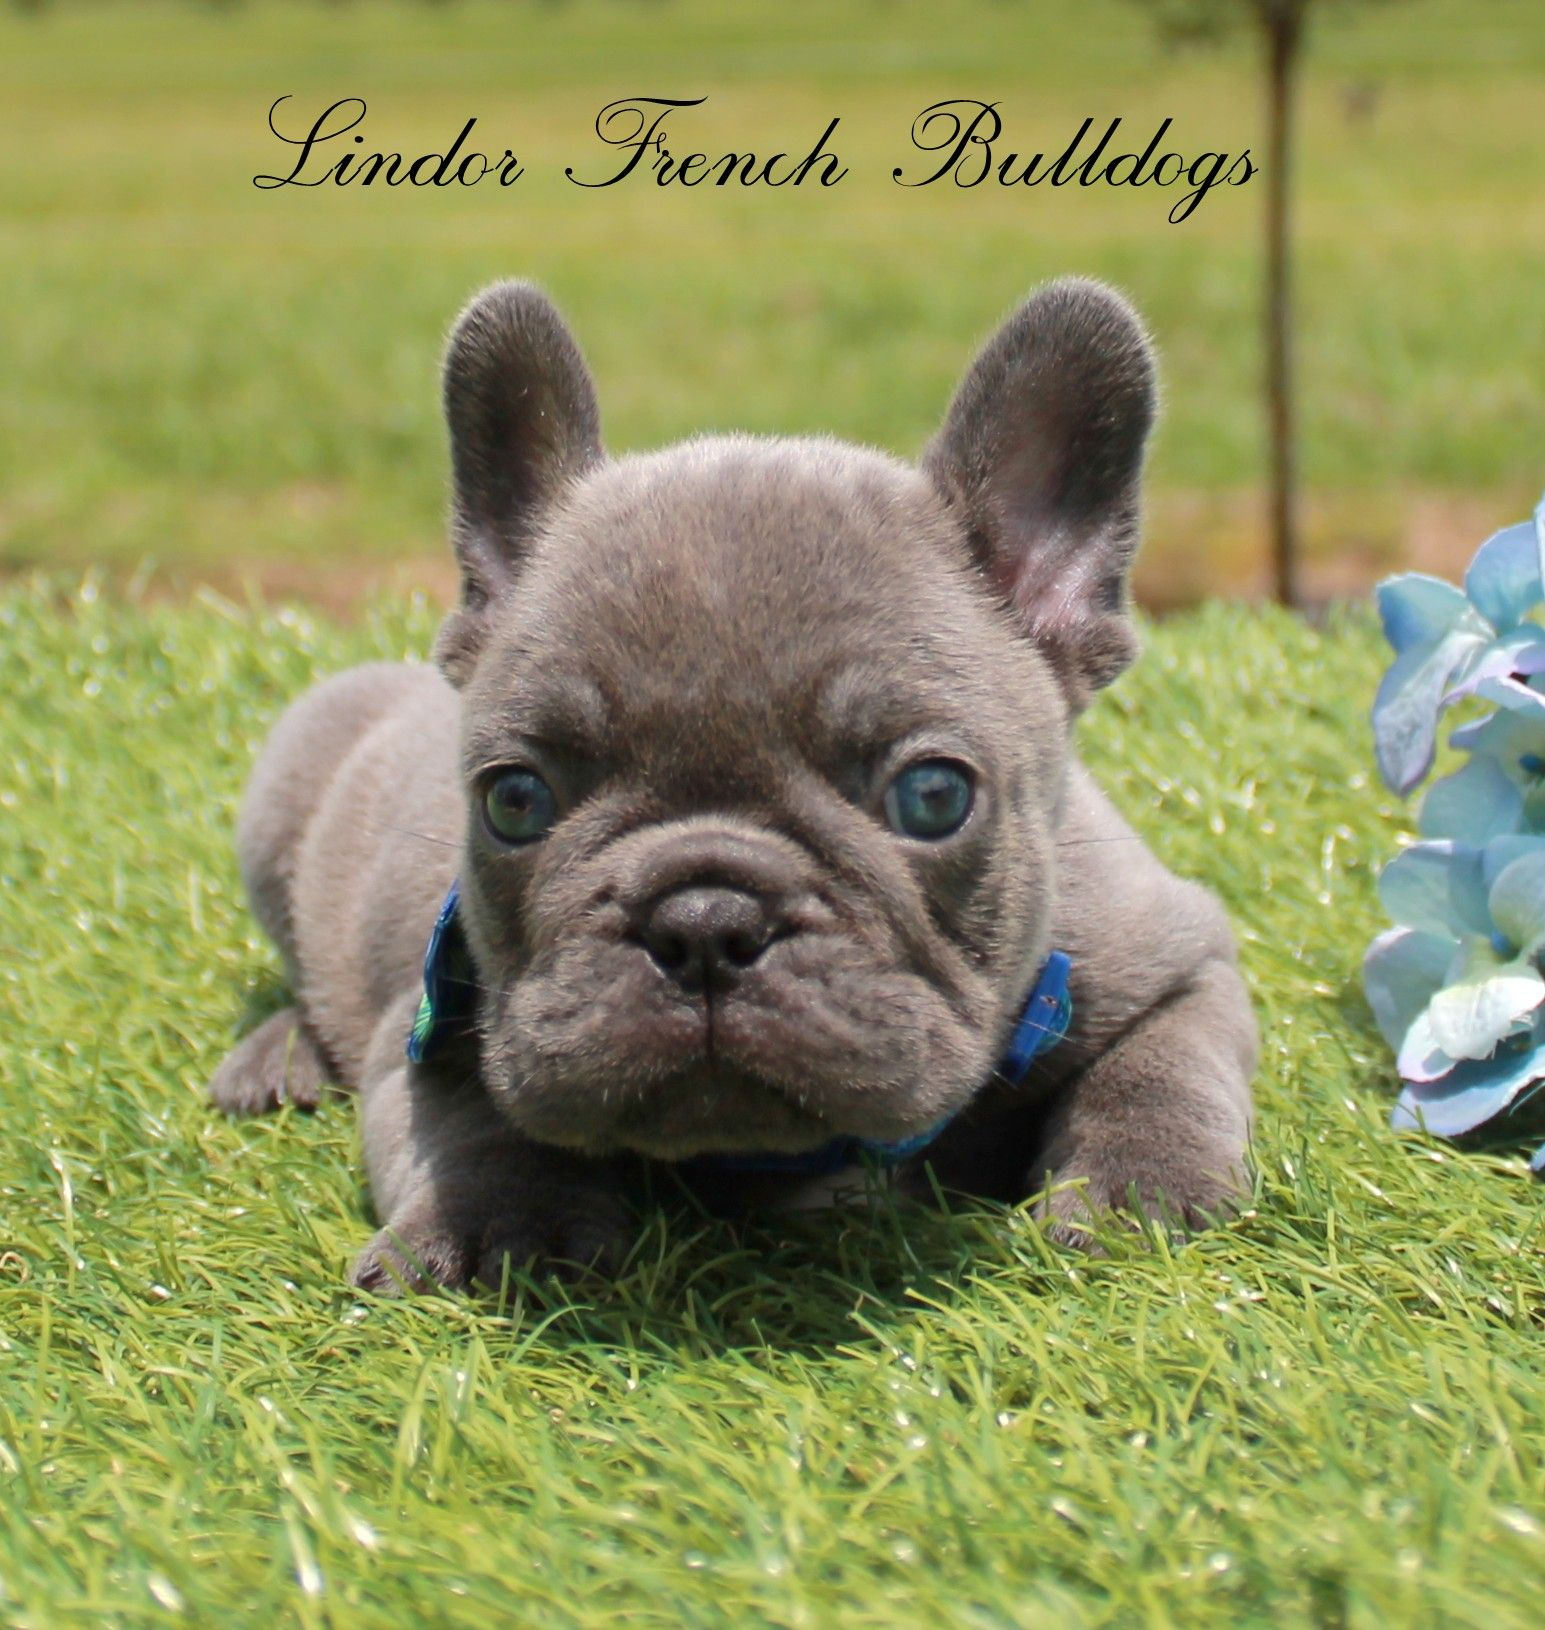 Home Lindor French Bulldogs Frenchies For Sale All Colors French Bulldog Puppies French Bulldog Lilac French Bulldog